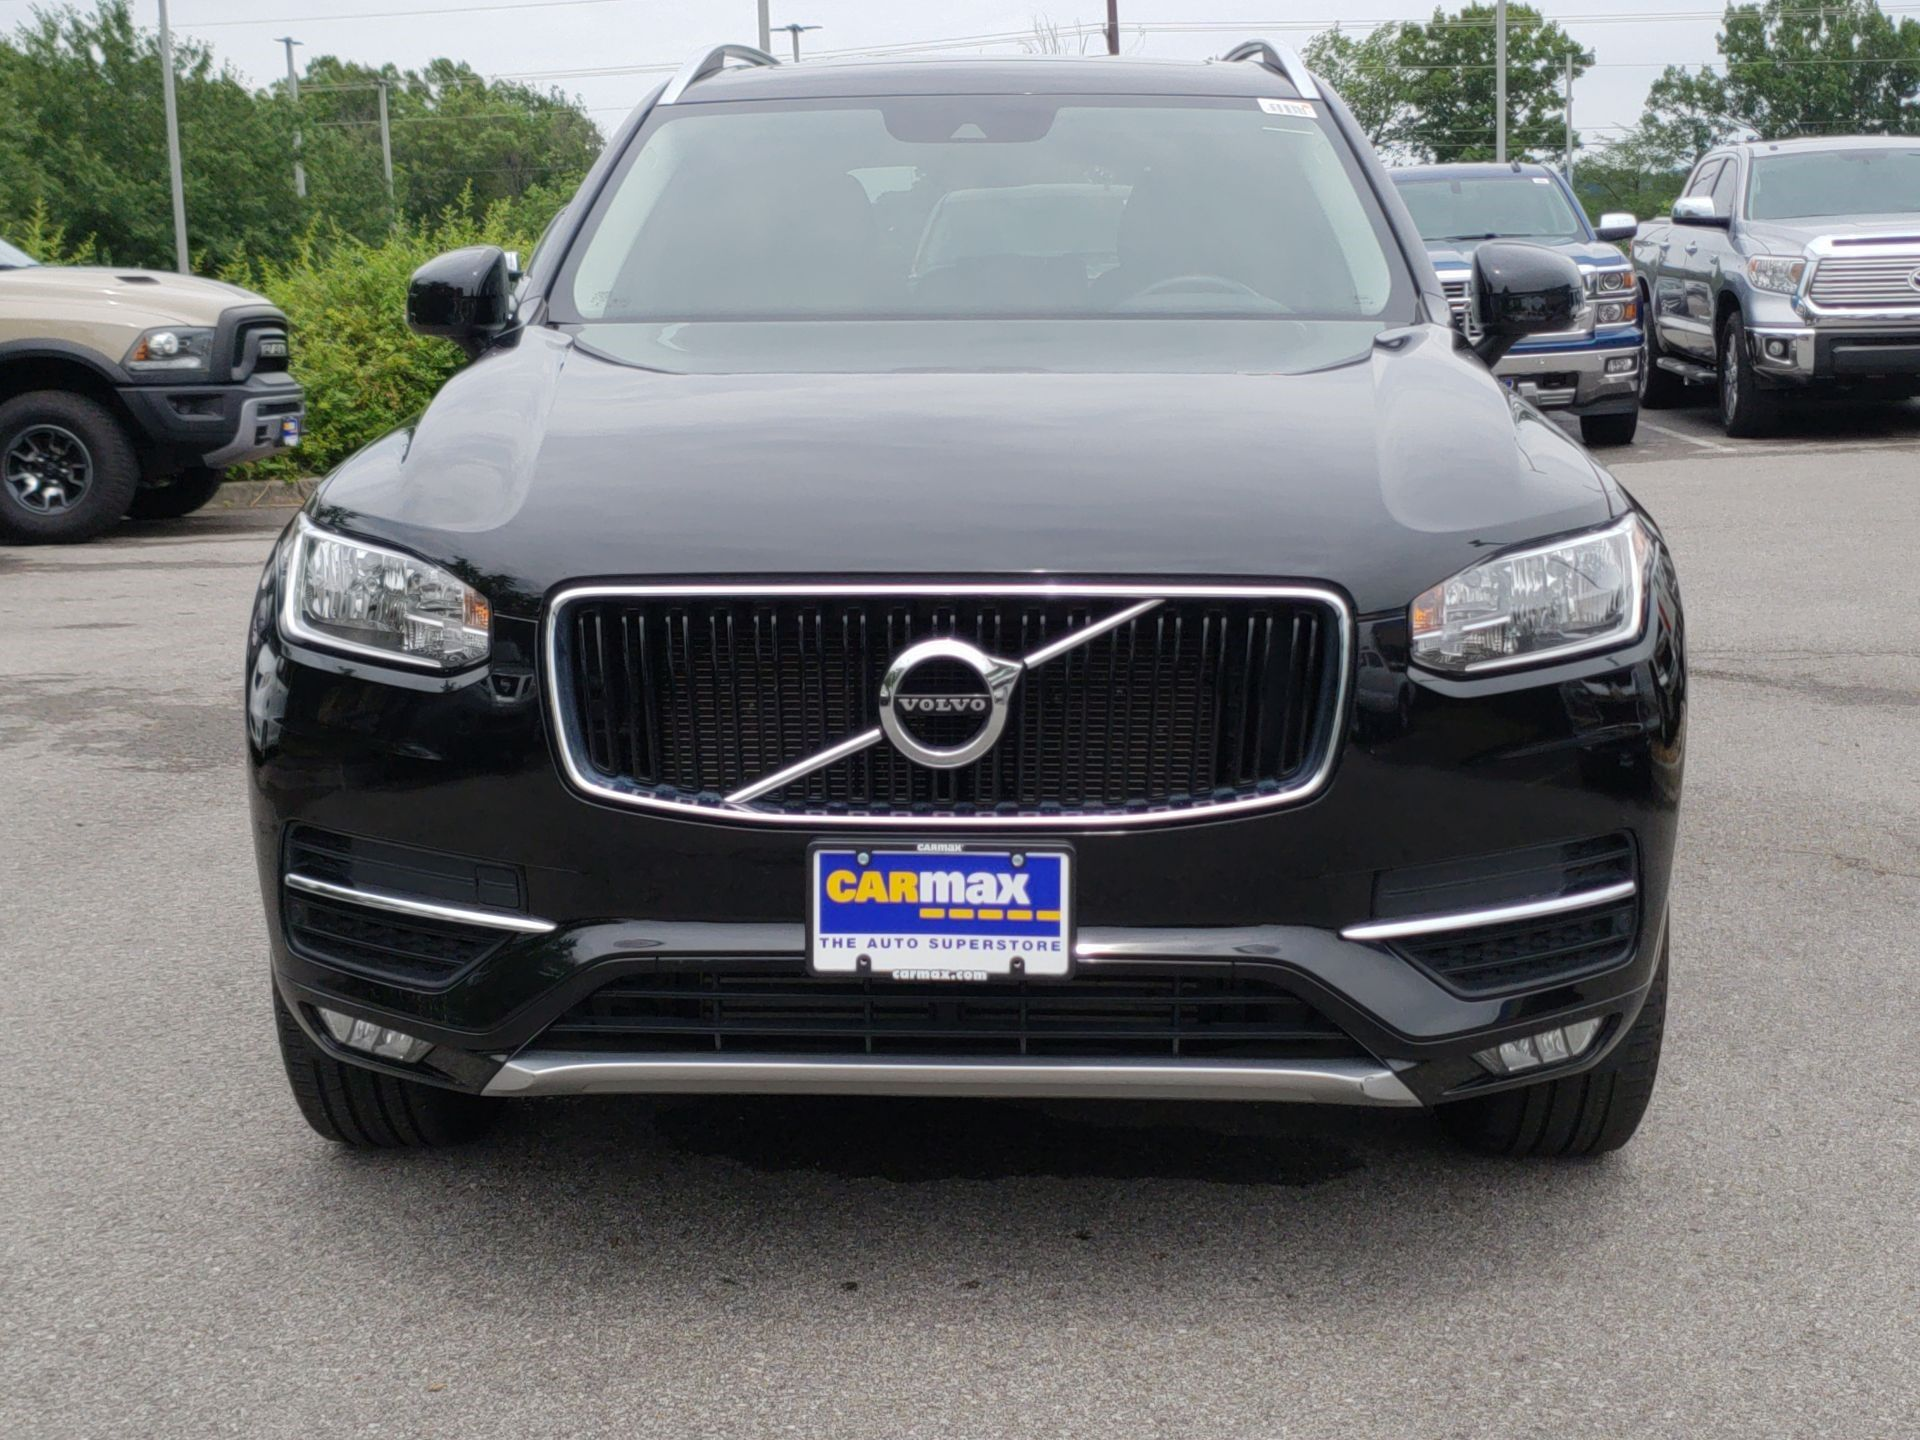 Used 2016 Volvo Xc90 In Knoxville Tennessee Carmax Volvo Xc90 Volvo Carmax